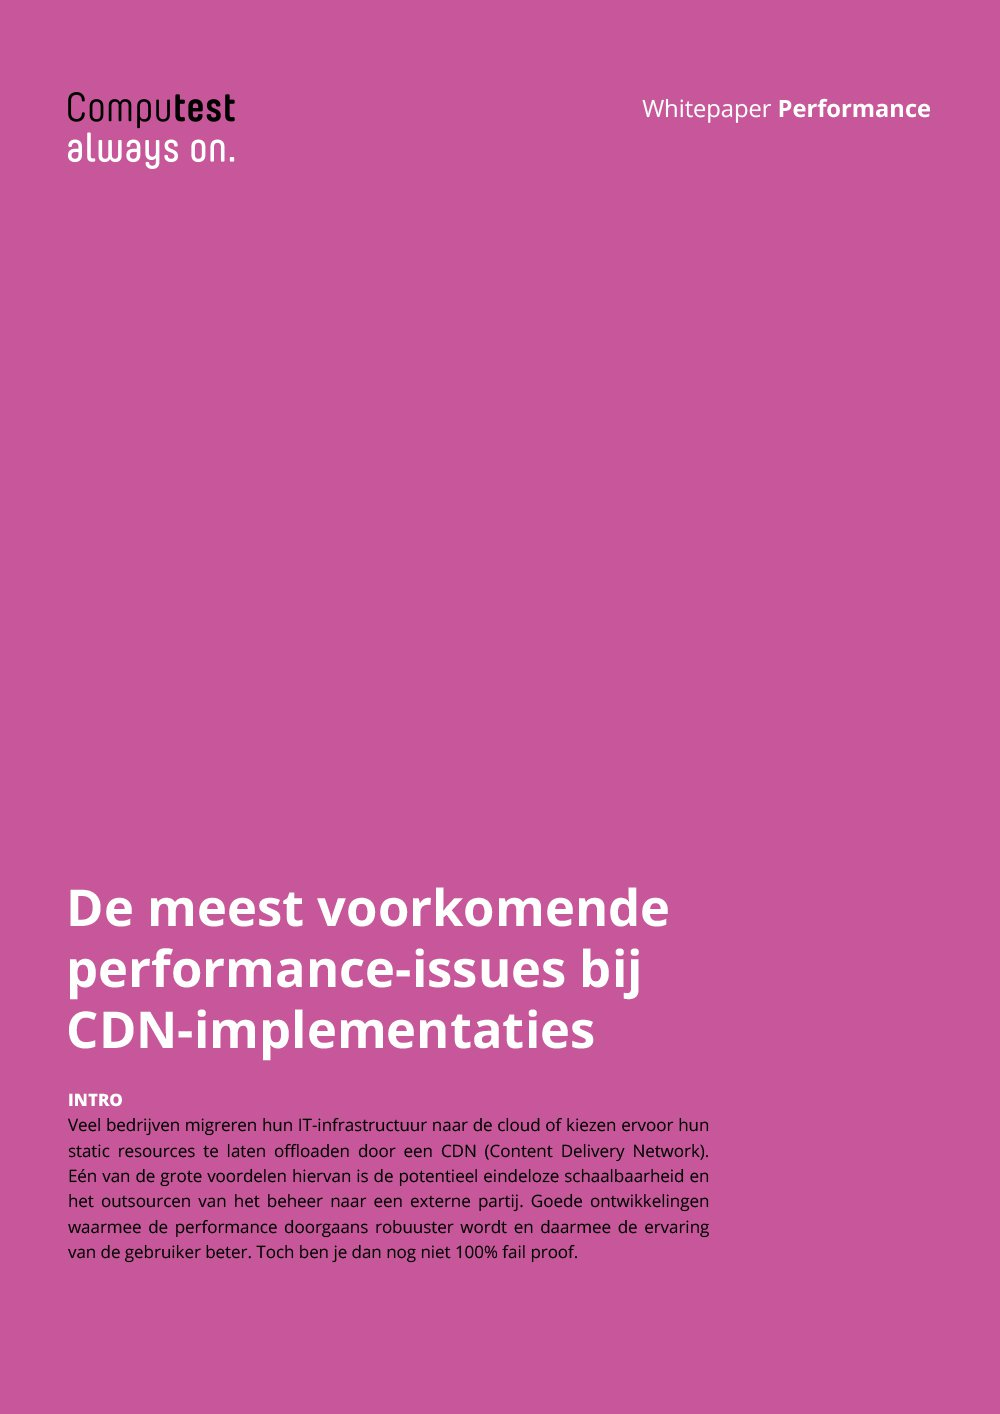 Meest voorkomende performance-issues